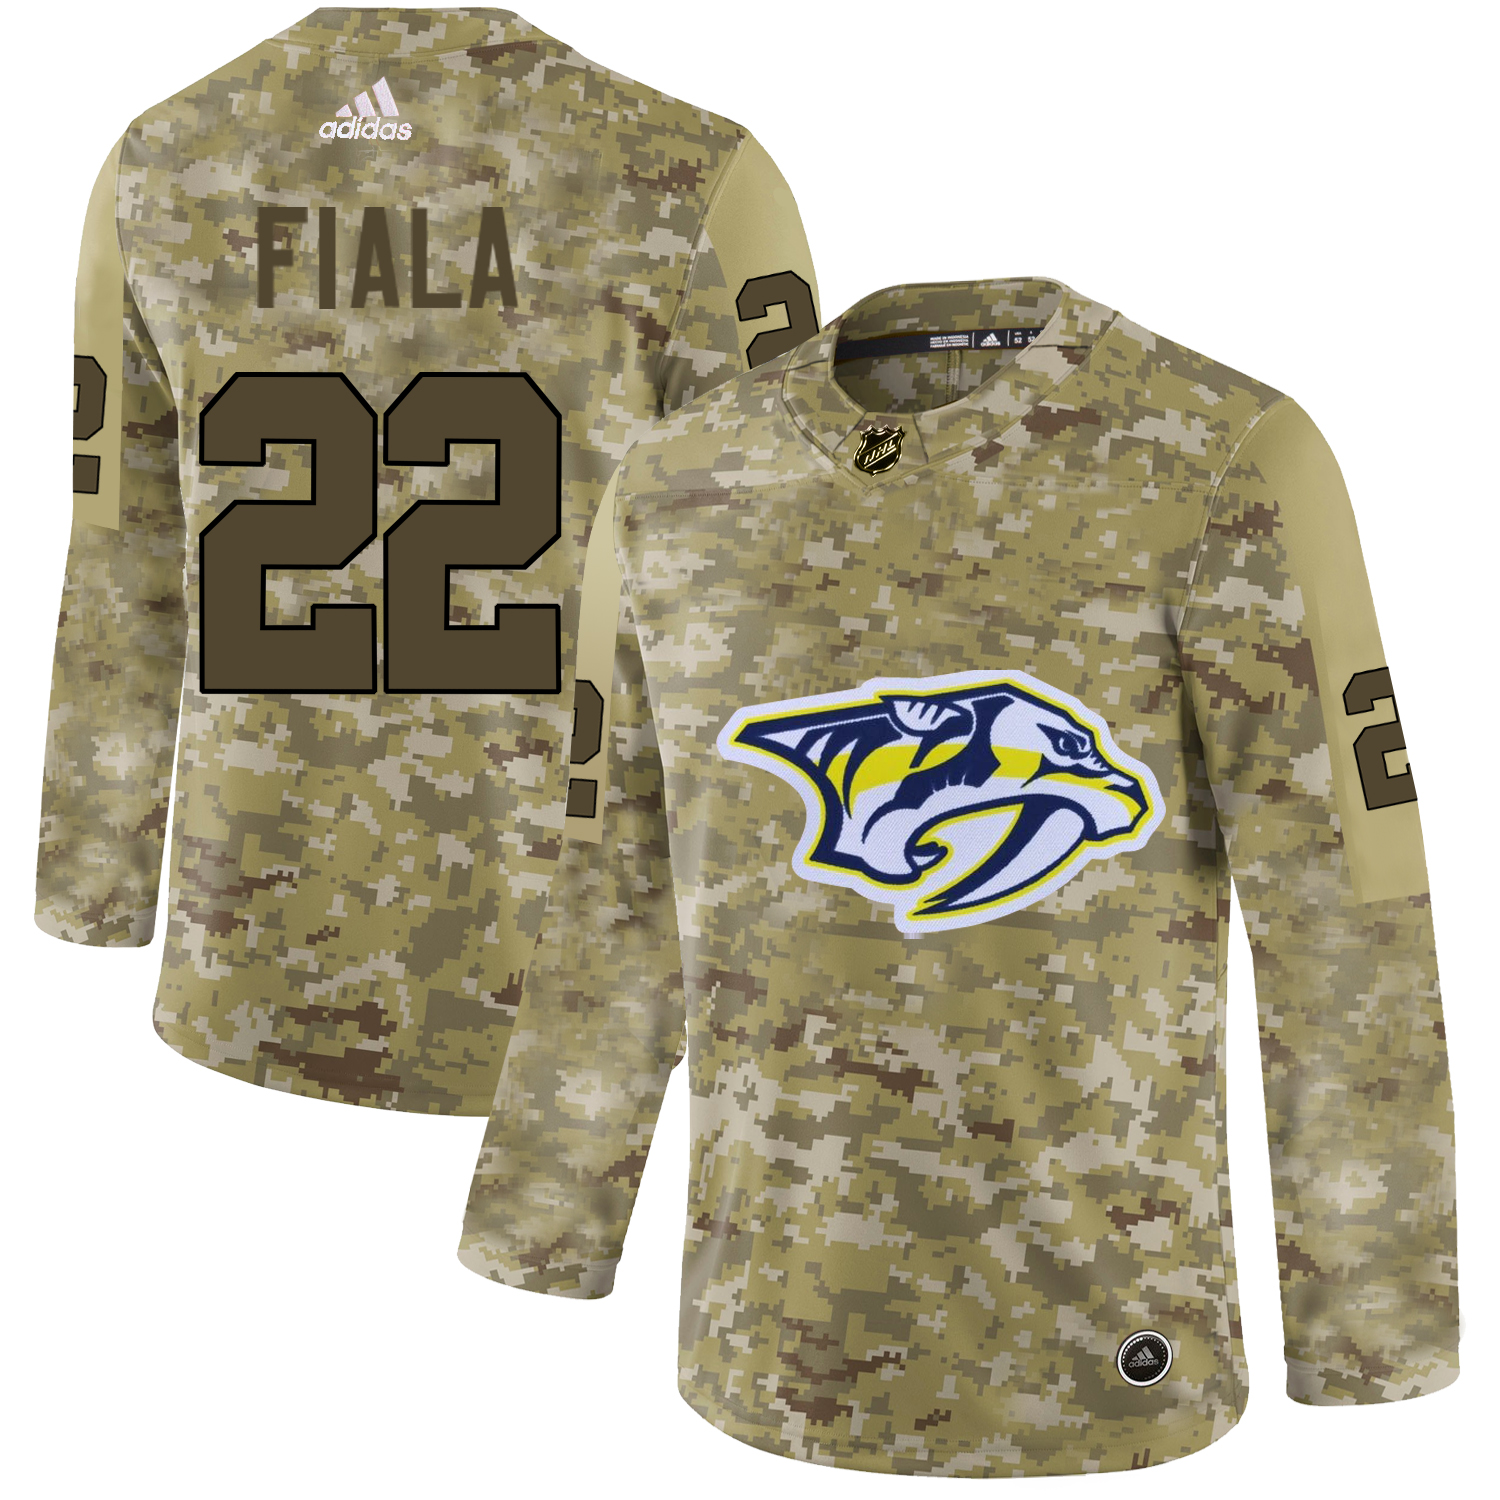 Adidas Predators #22 Kevin Fiala Camo Authentic Stitched NHL Jersey